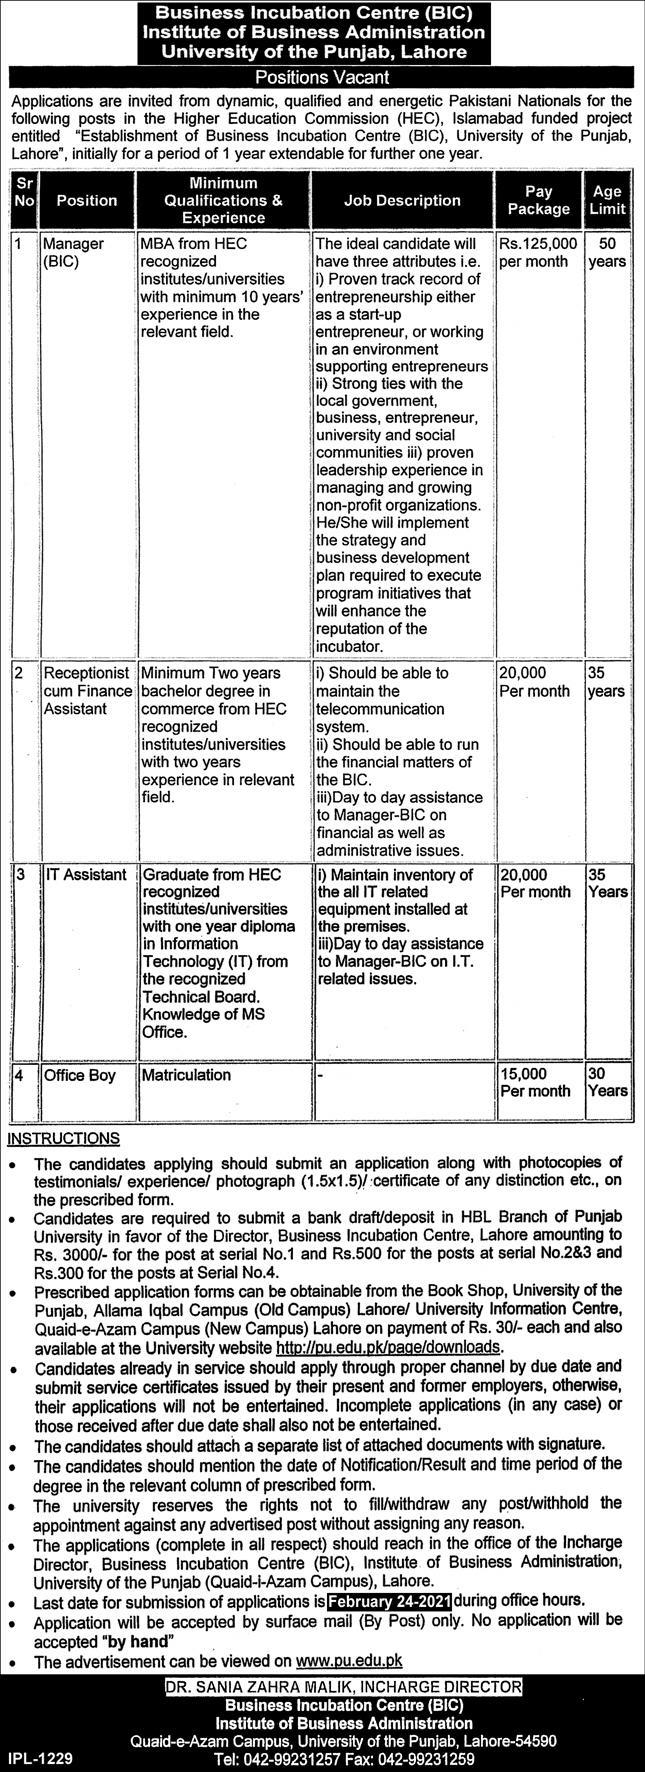 Business Incubation Centre (BIC) Institute of Business Administration University of the Punjab Lahore Jobs 2021